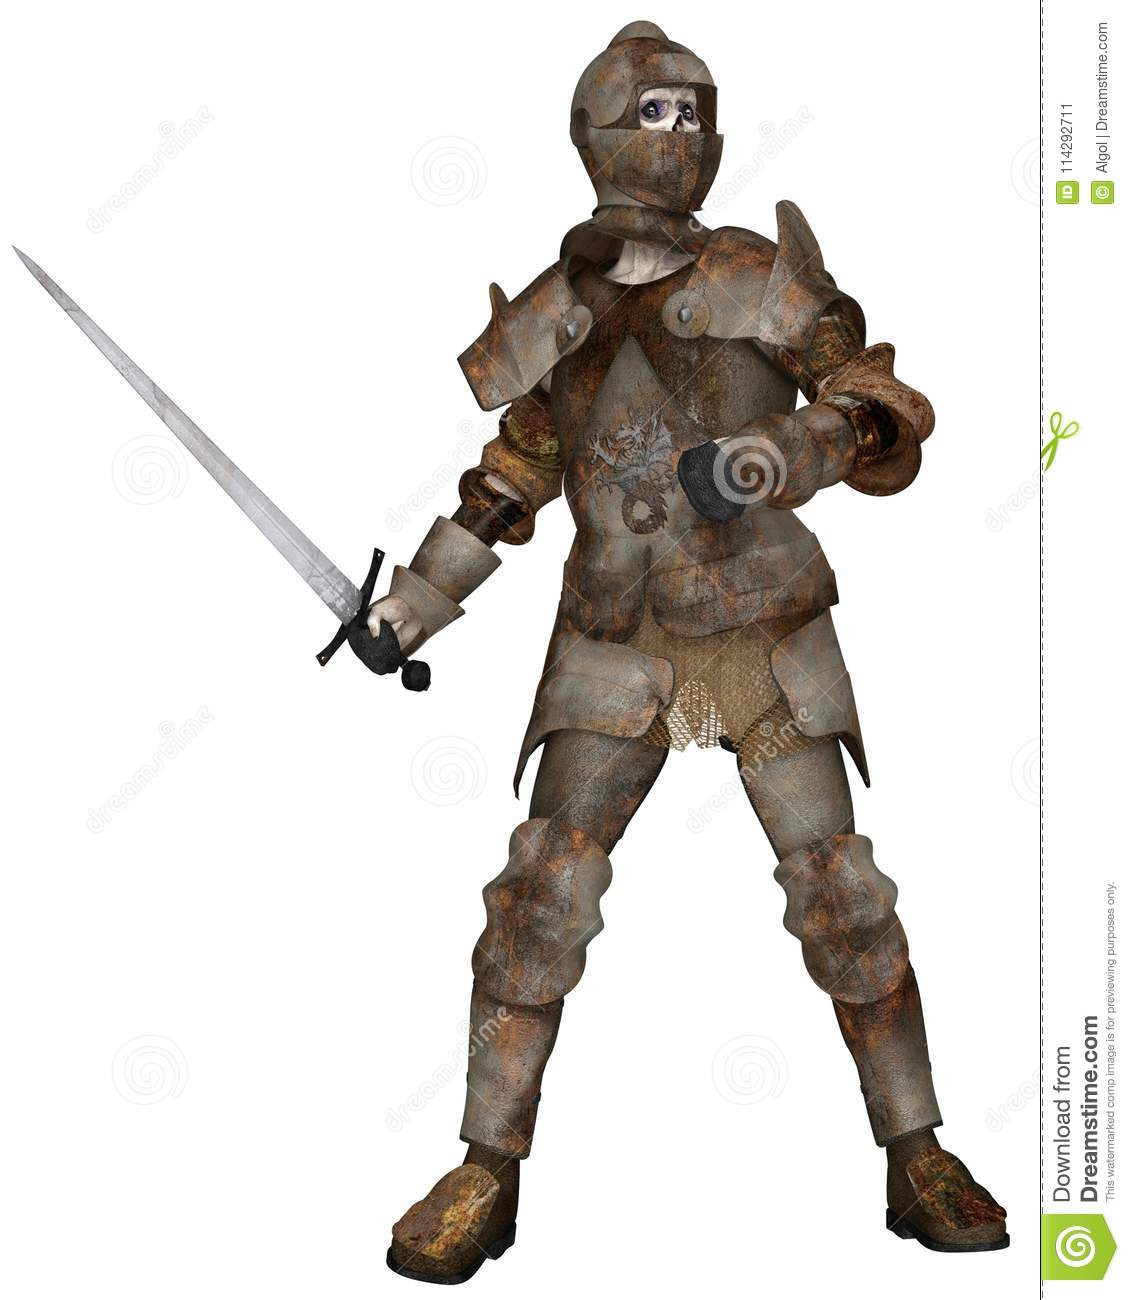 Undead Zombie Knight in Attacking Pose